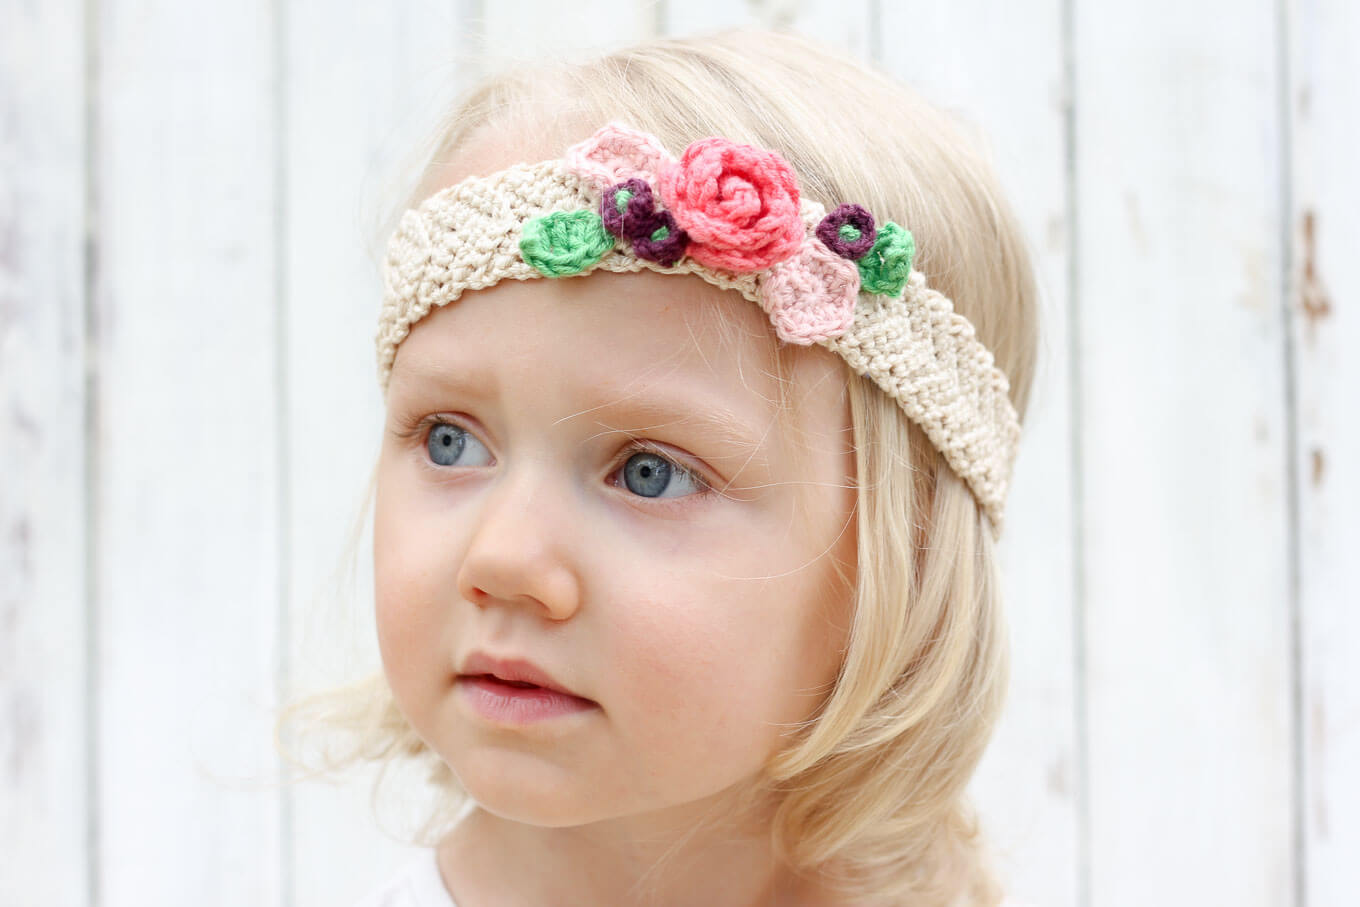 Crochet Wide Headband With Flower Free Pattern : Free Crochet Flower Headband Pattern (Baby, Toddler, Adult)